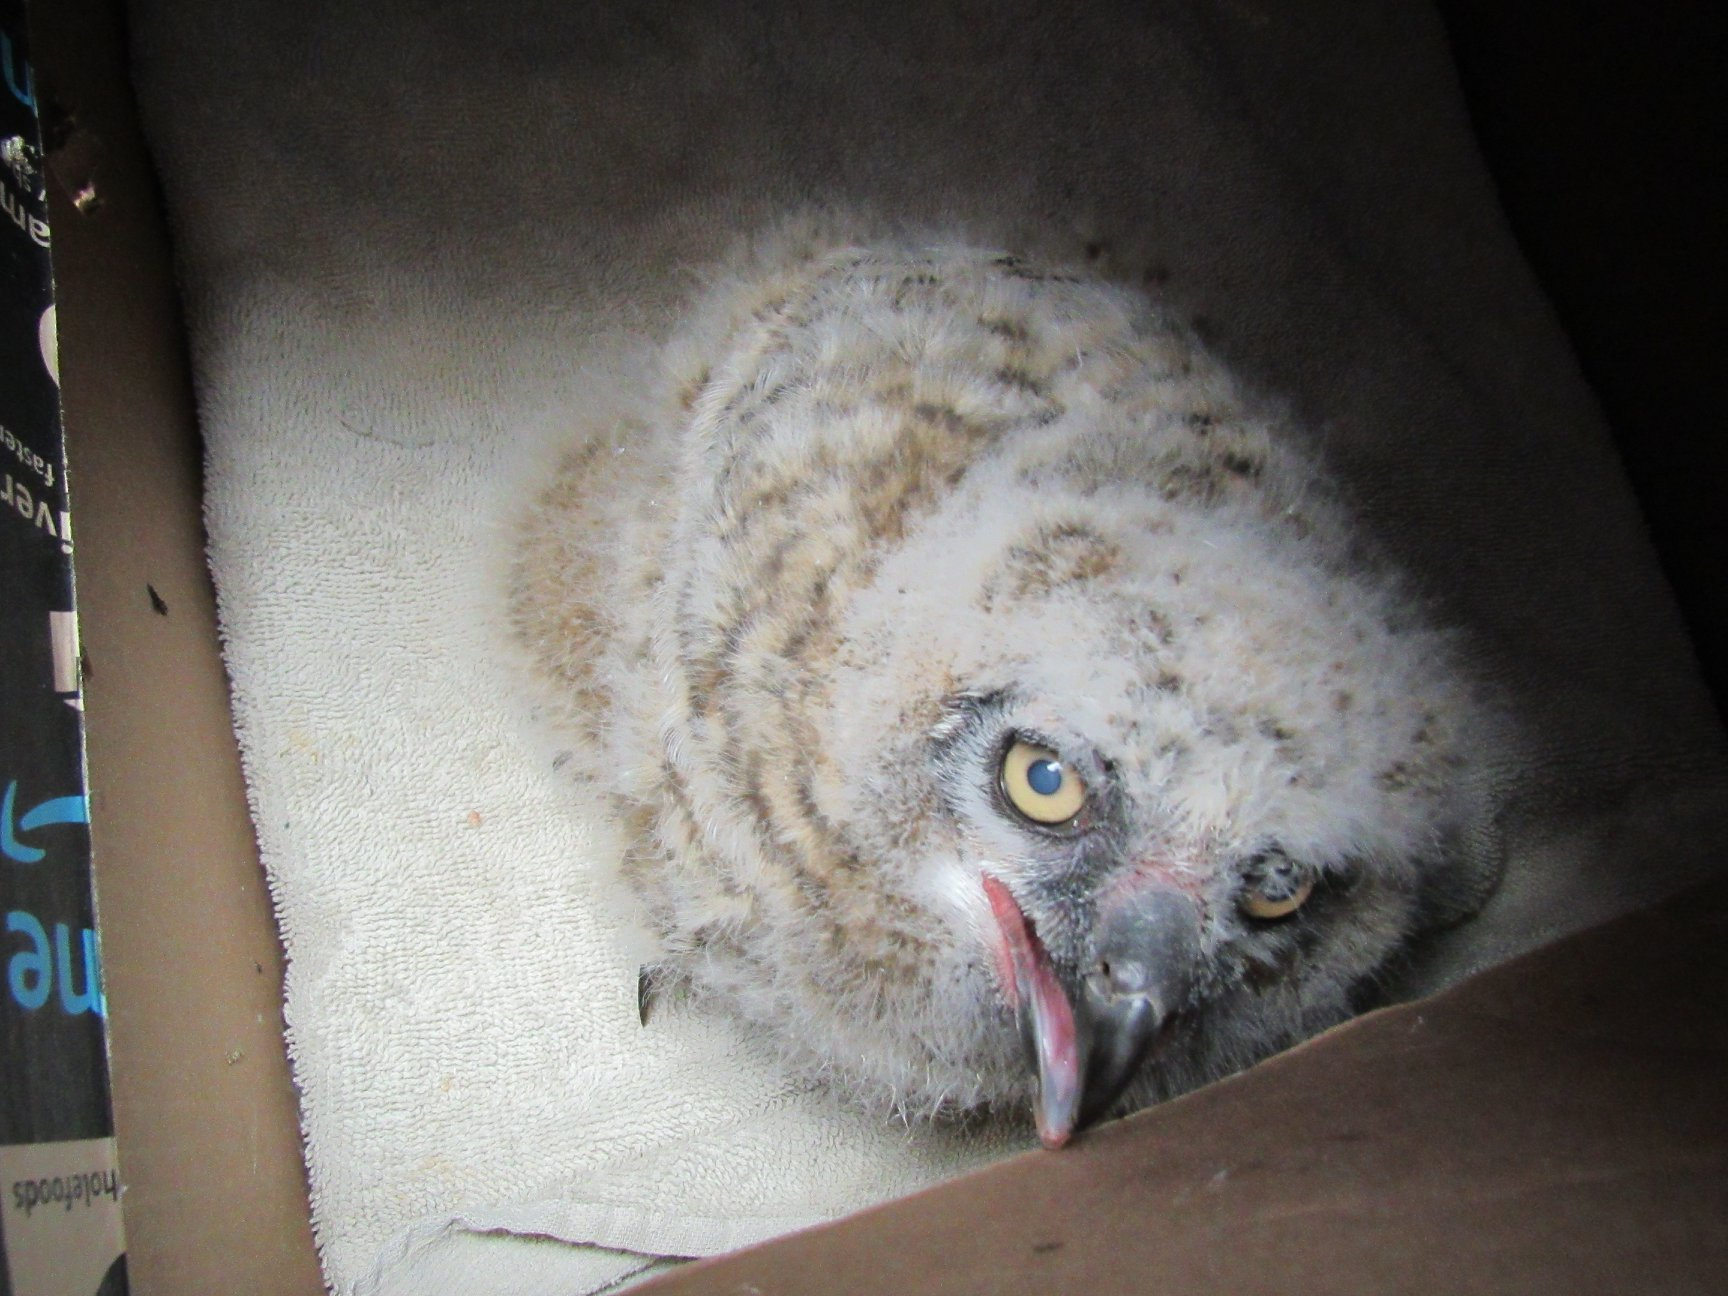 When the owlets arrived many were tiny fluff balls